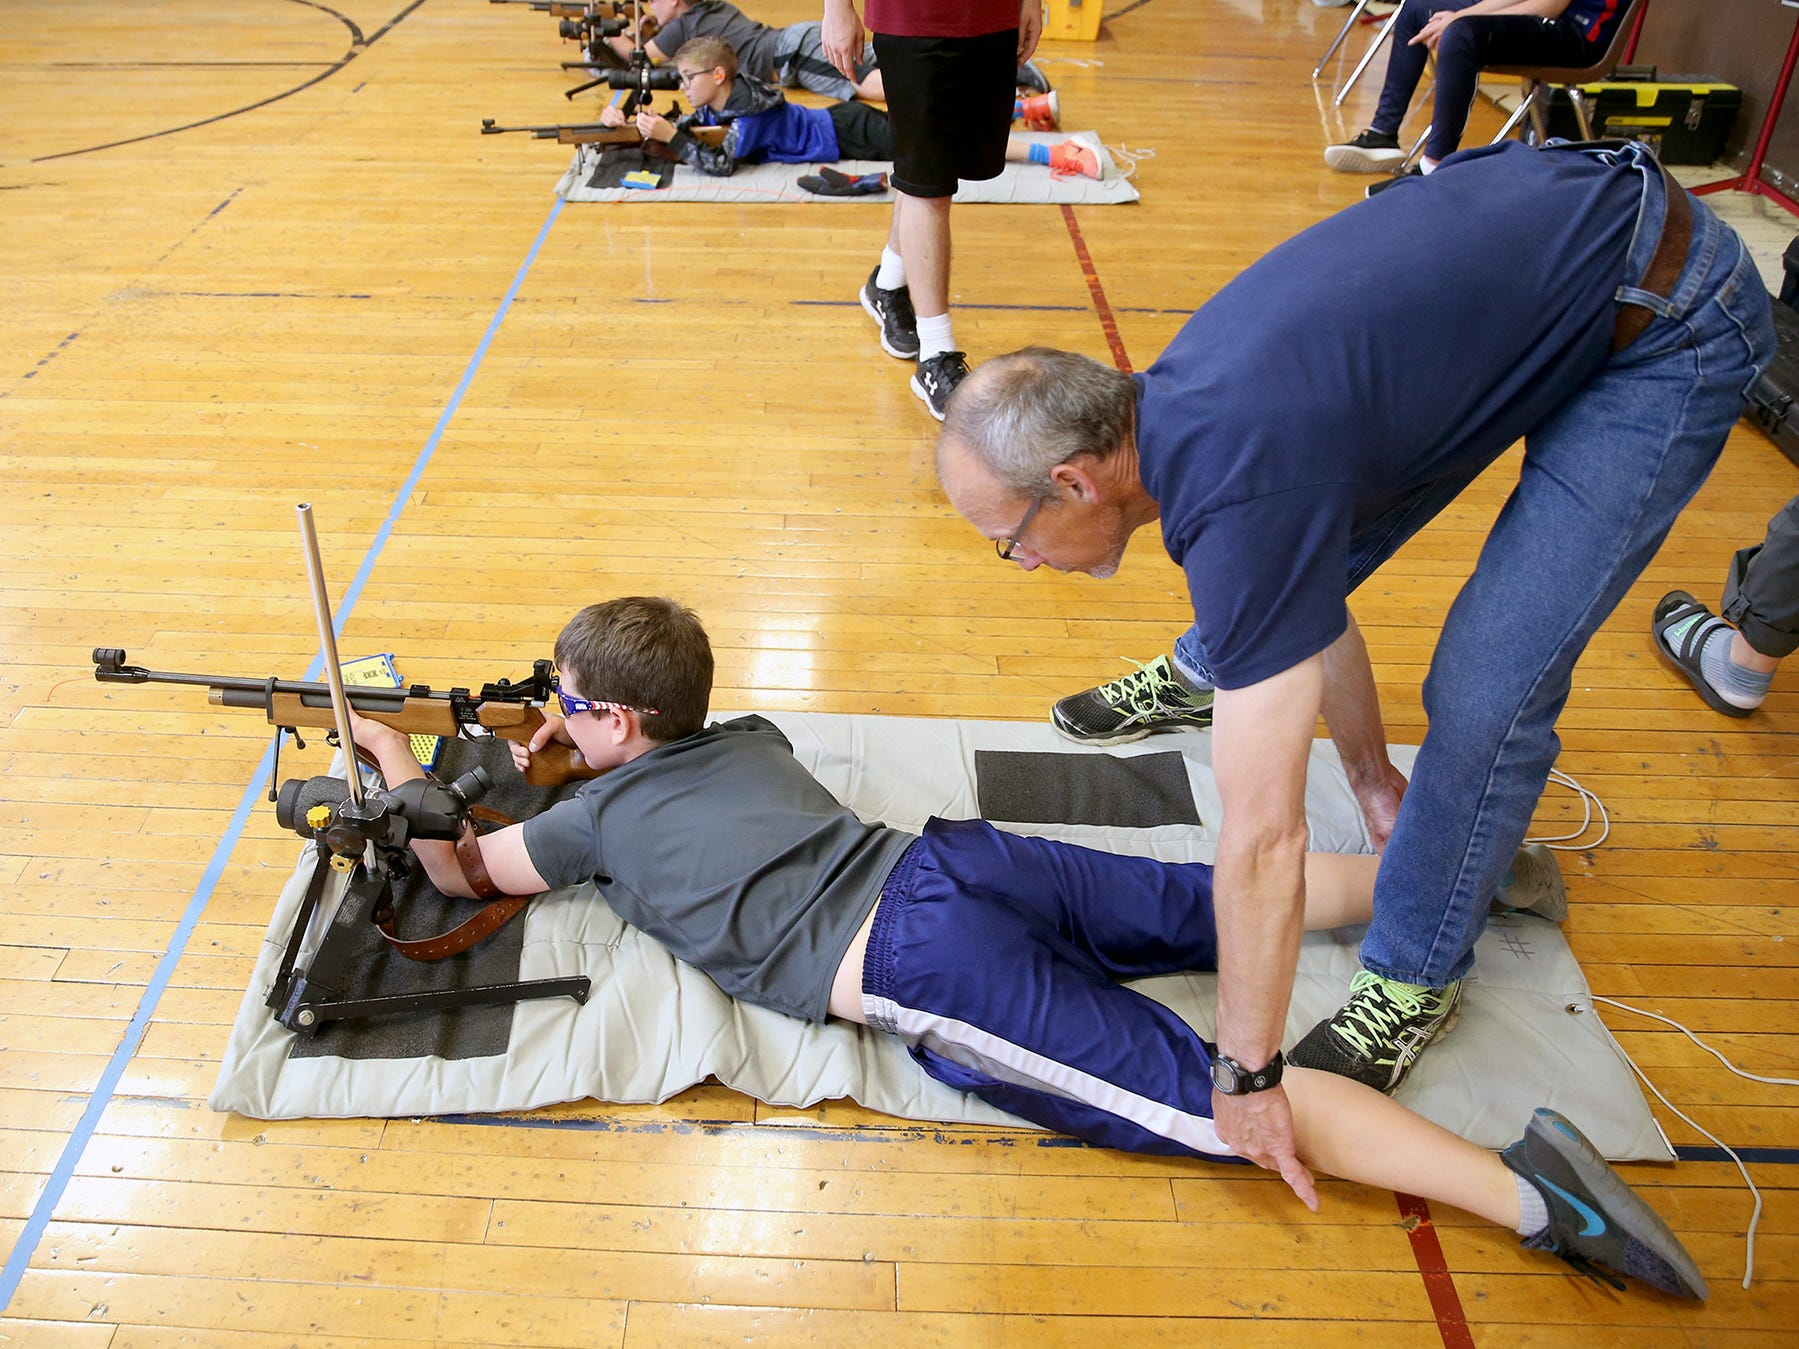 Tyce Outhwaite, 9, of Port Orchard gets help from instructor Jeff Phillips on his prone shooting position at the South Kitsap High School NJROTC Wolf Battalion Rifle Camp runs from August 8-10, at the National Guard Armory in Port Orchard.The camp teaches rifle safety, and shooting technics.